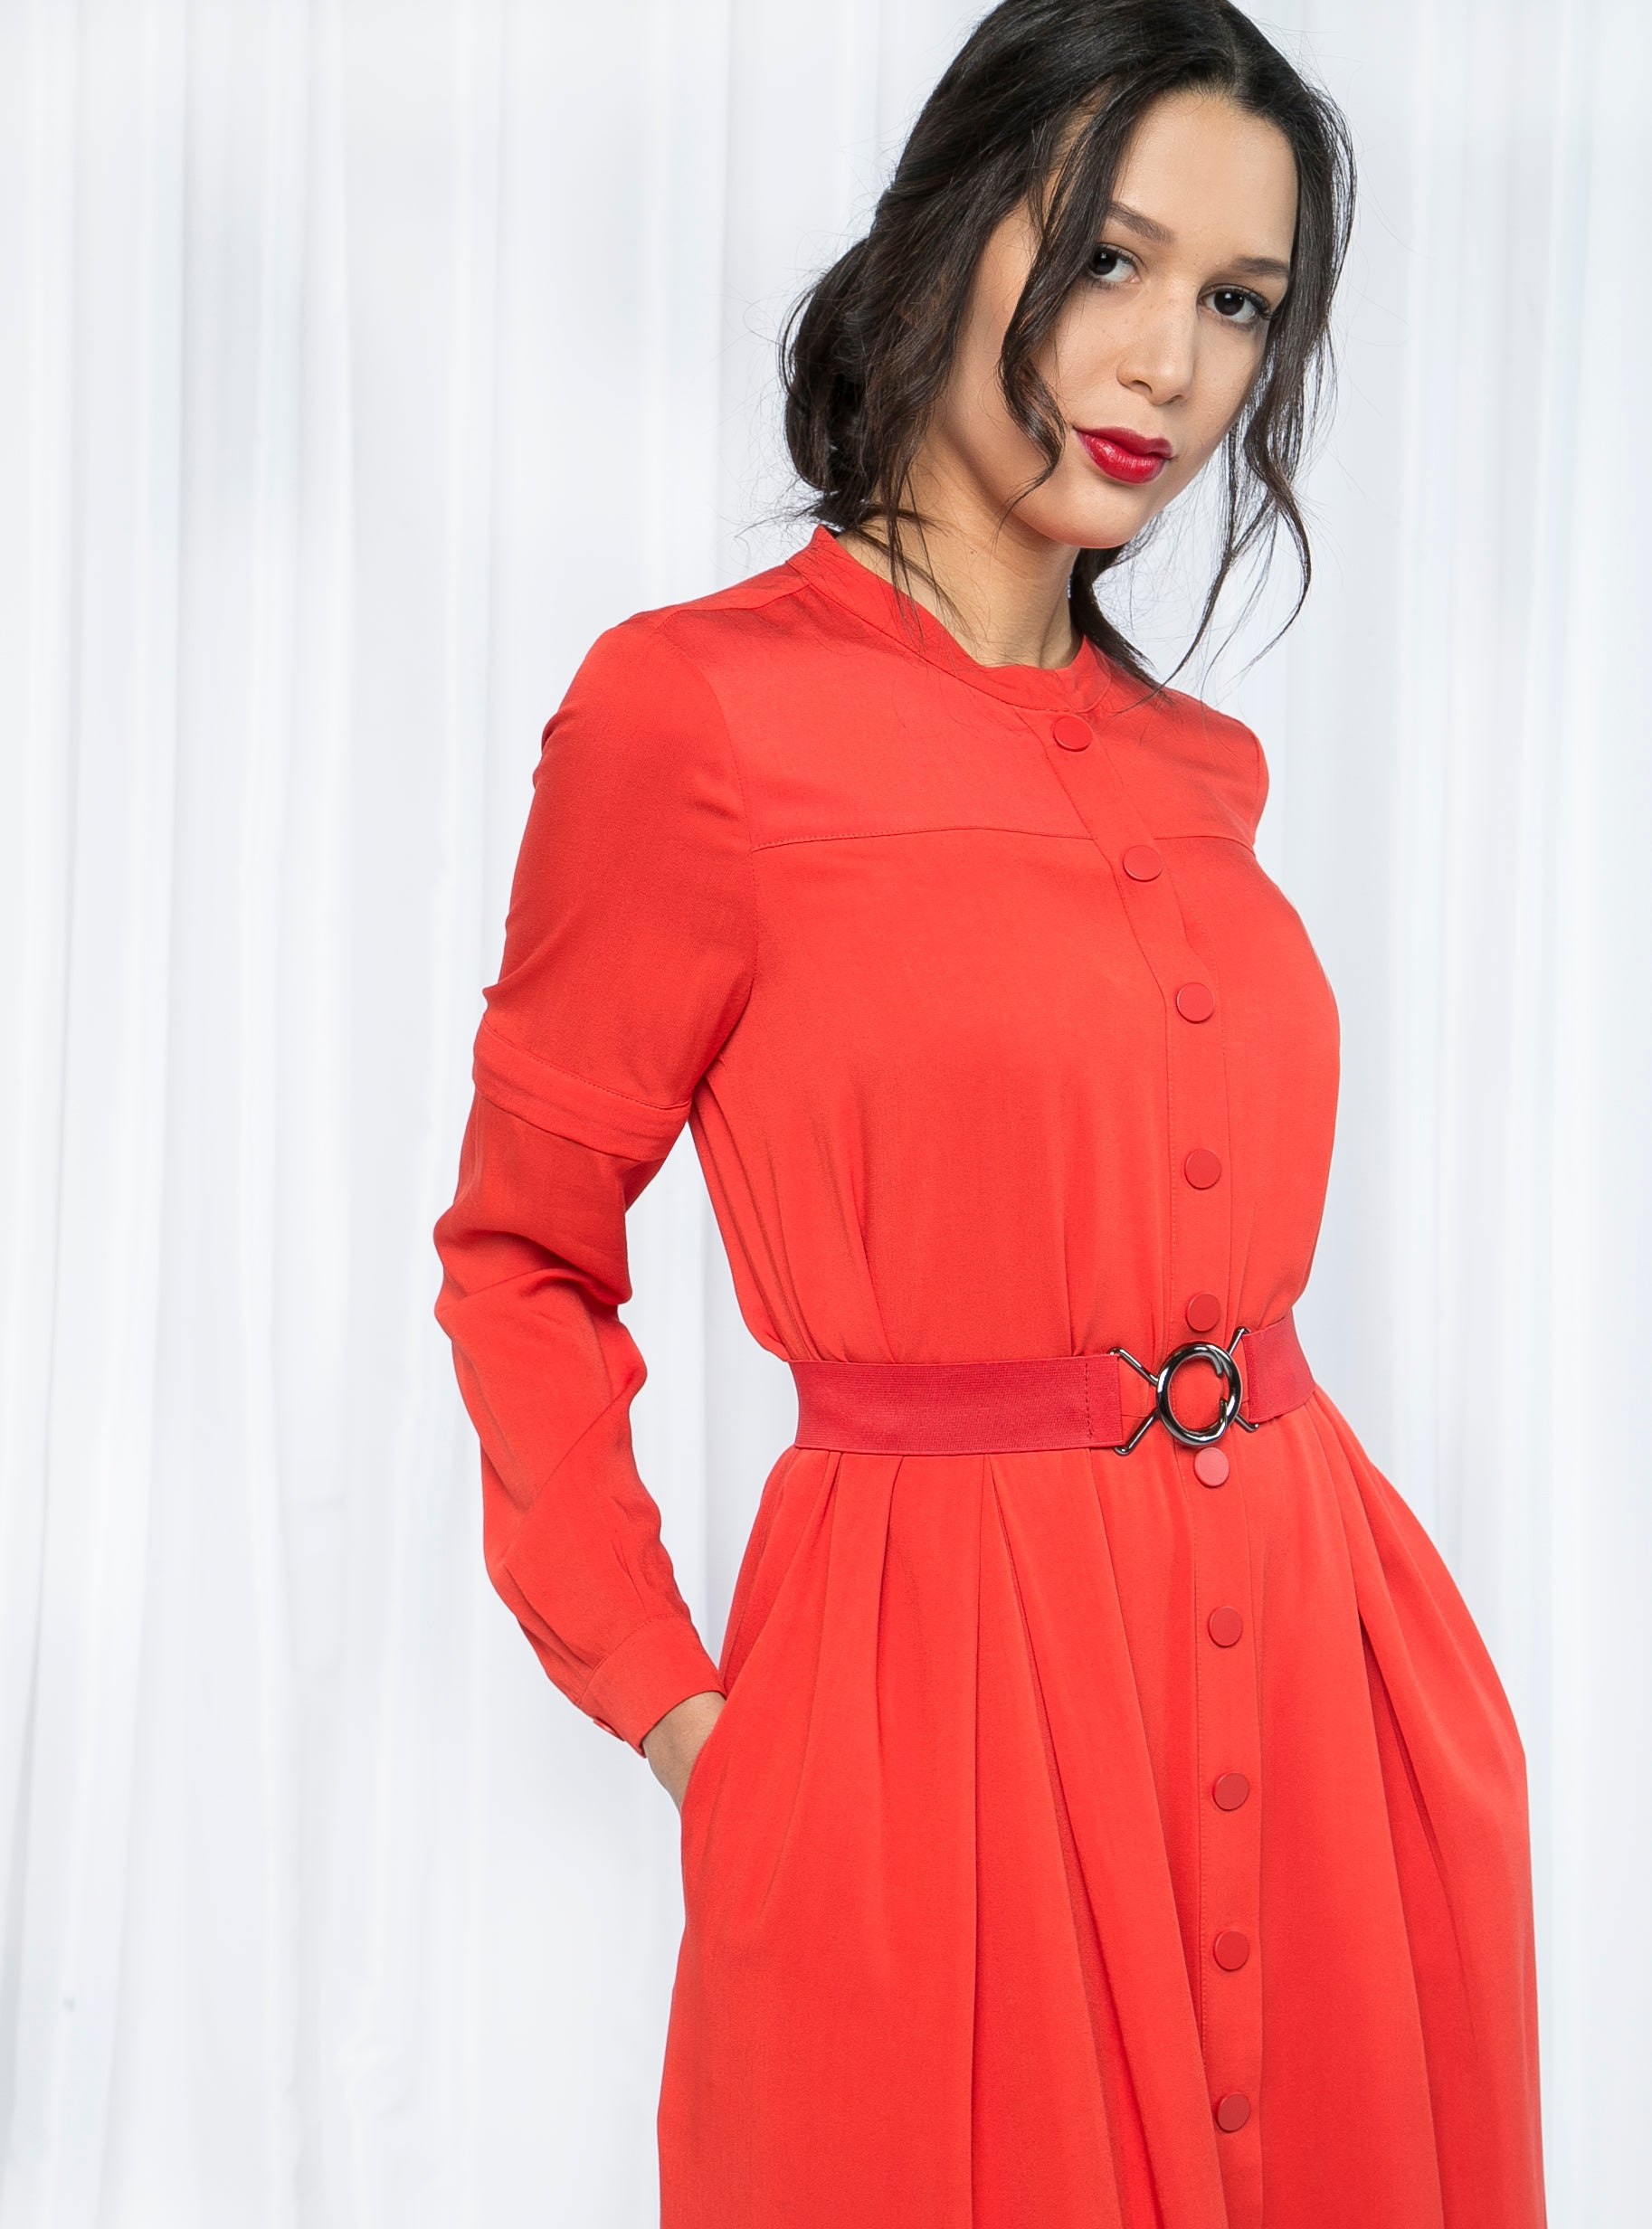 BELTED DRESS WITH DETACHABLE SLEEVES - Store WF